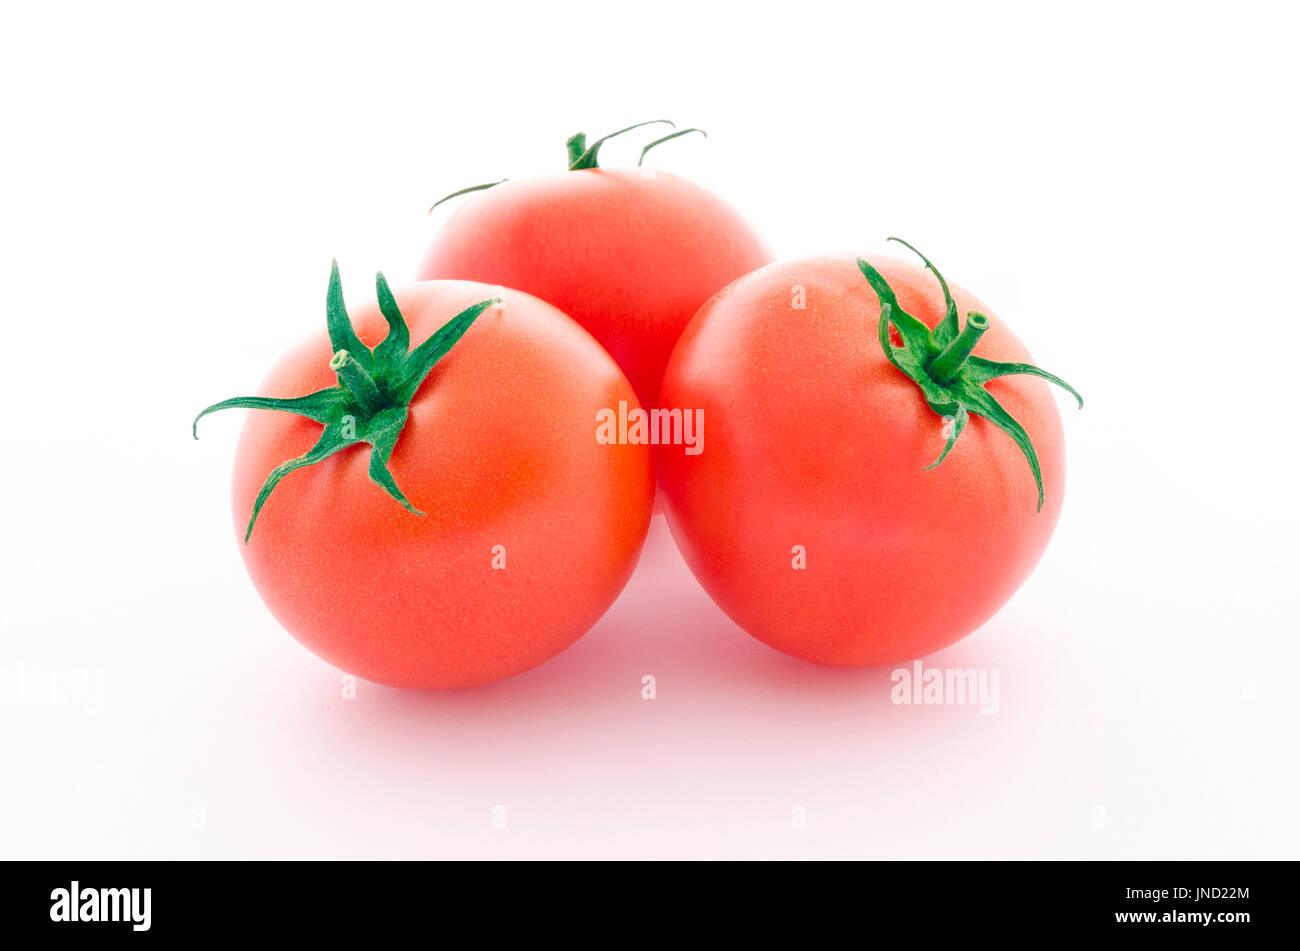 Three juicy tomatoes isolated on white background - Stock Image